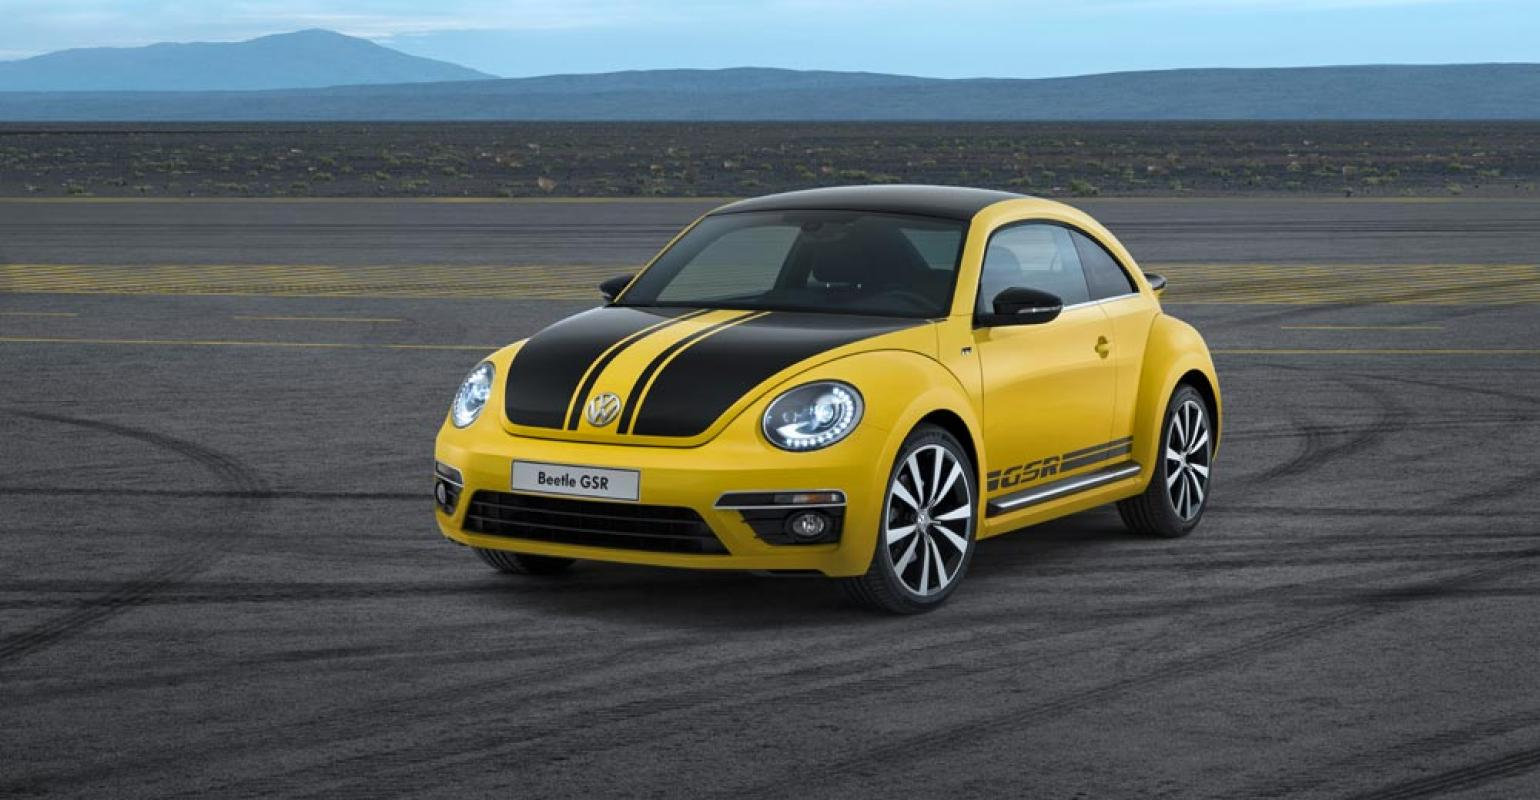 VW Unwraps Special Editions of Beetle, GTI in Chicago